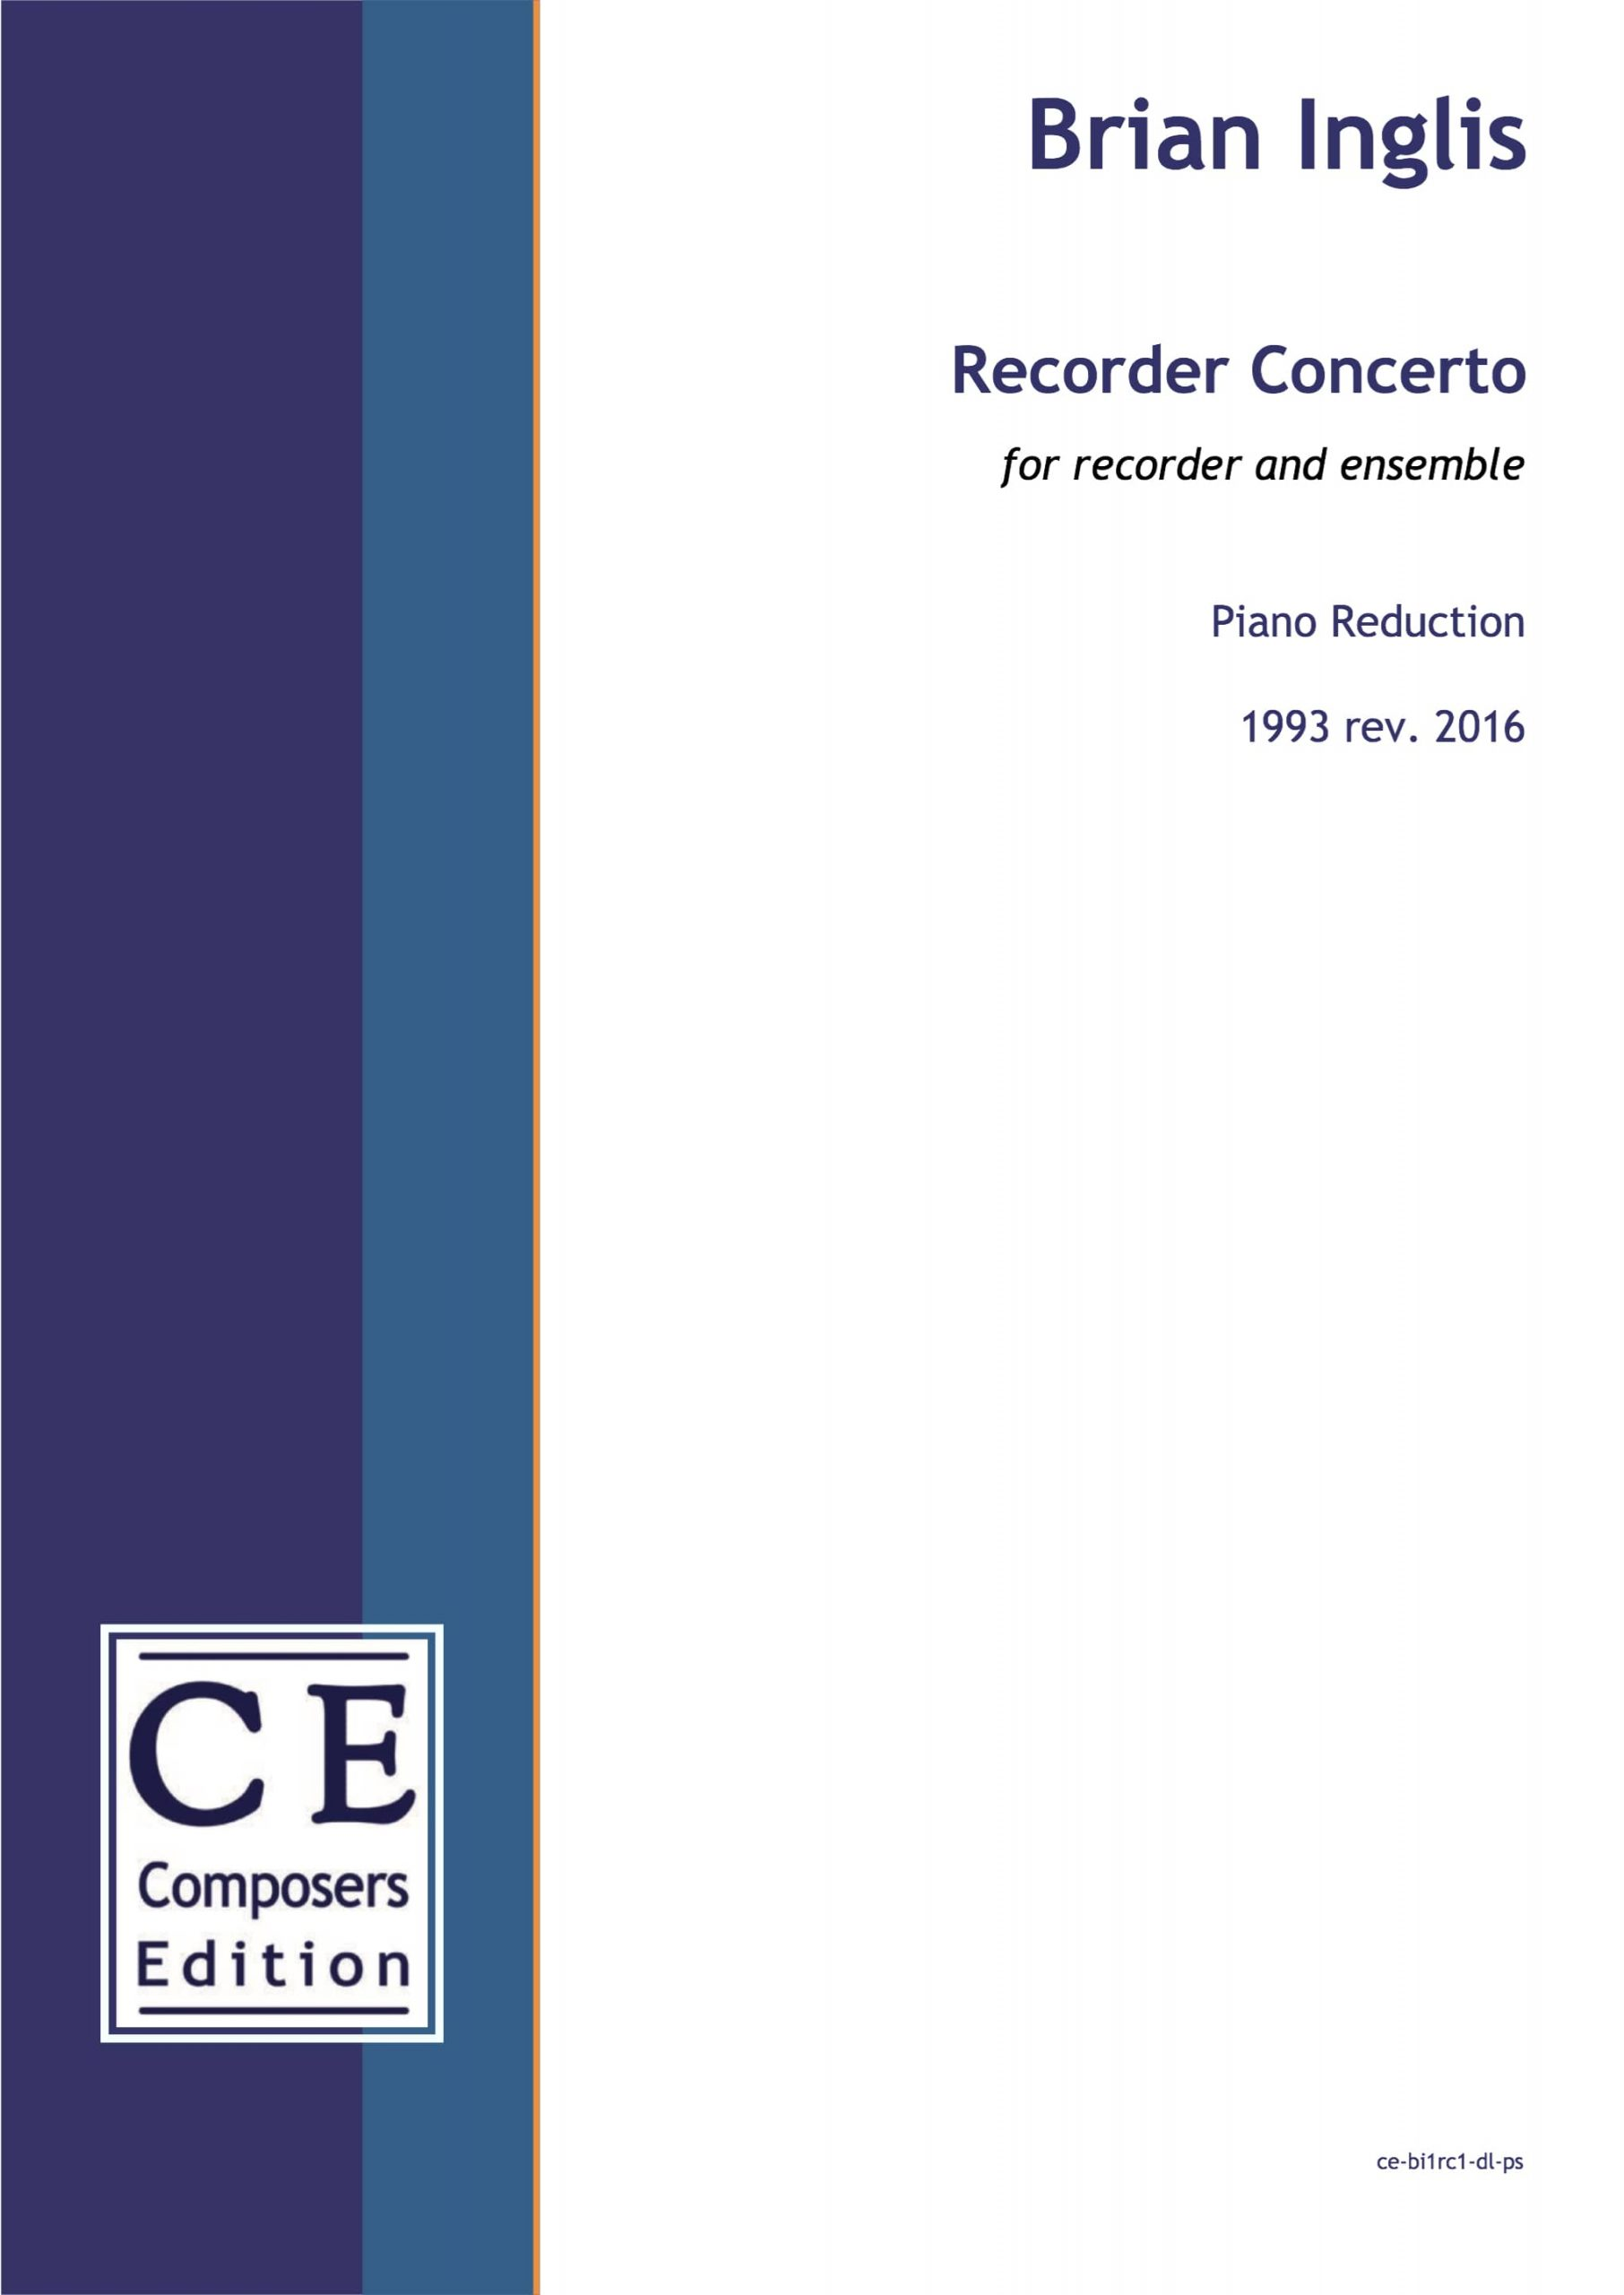 Brian Inglis: Recorder Concerto for recorder and ensemble